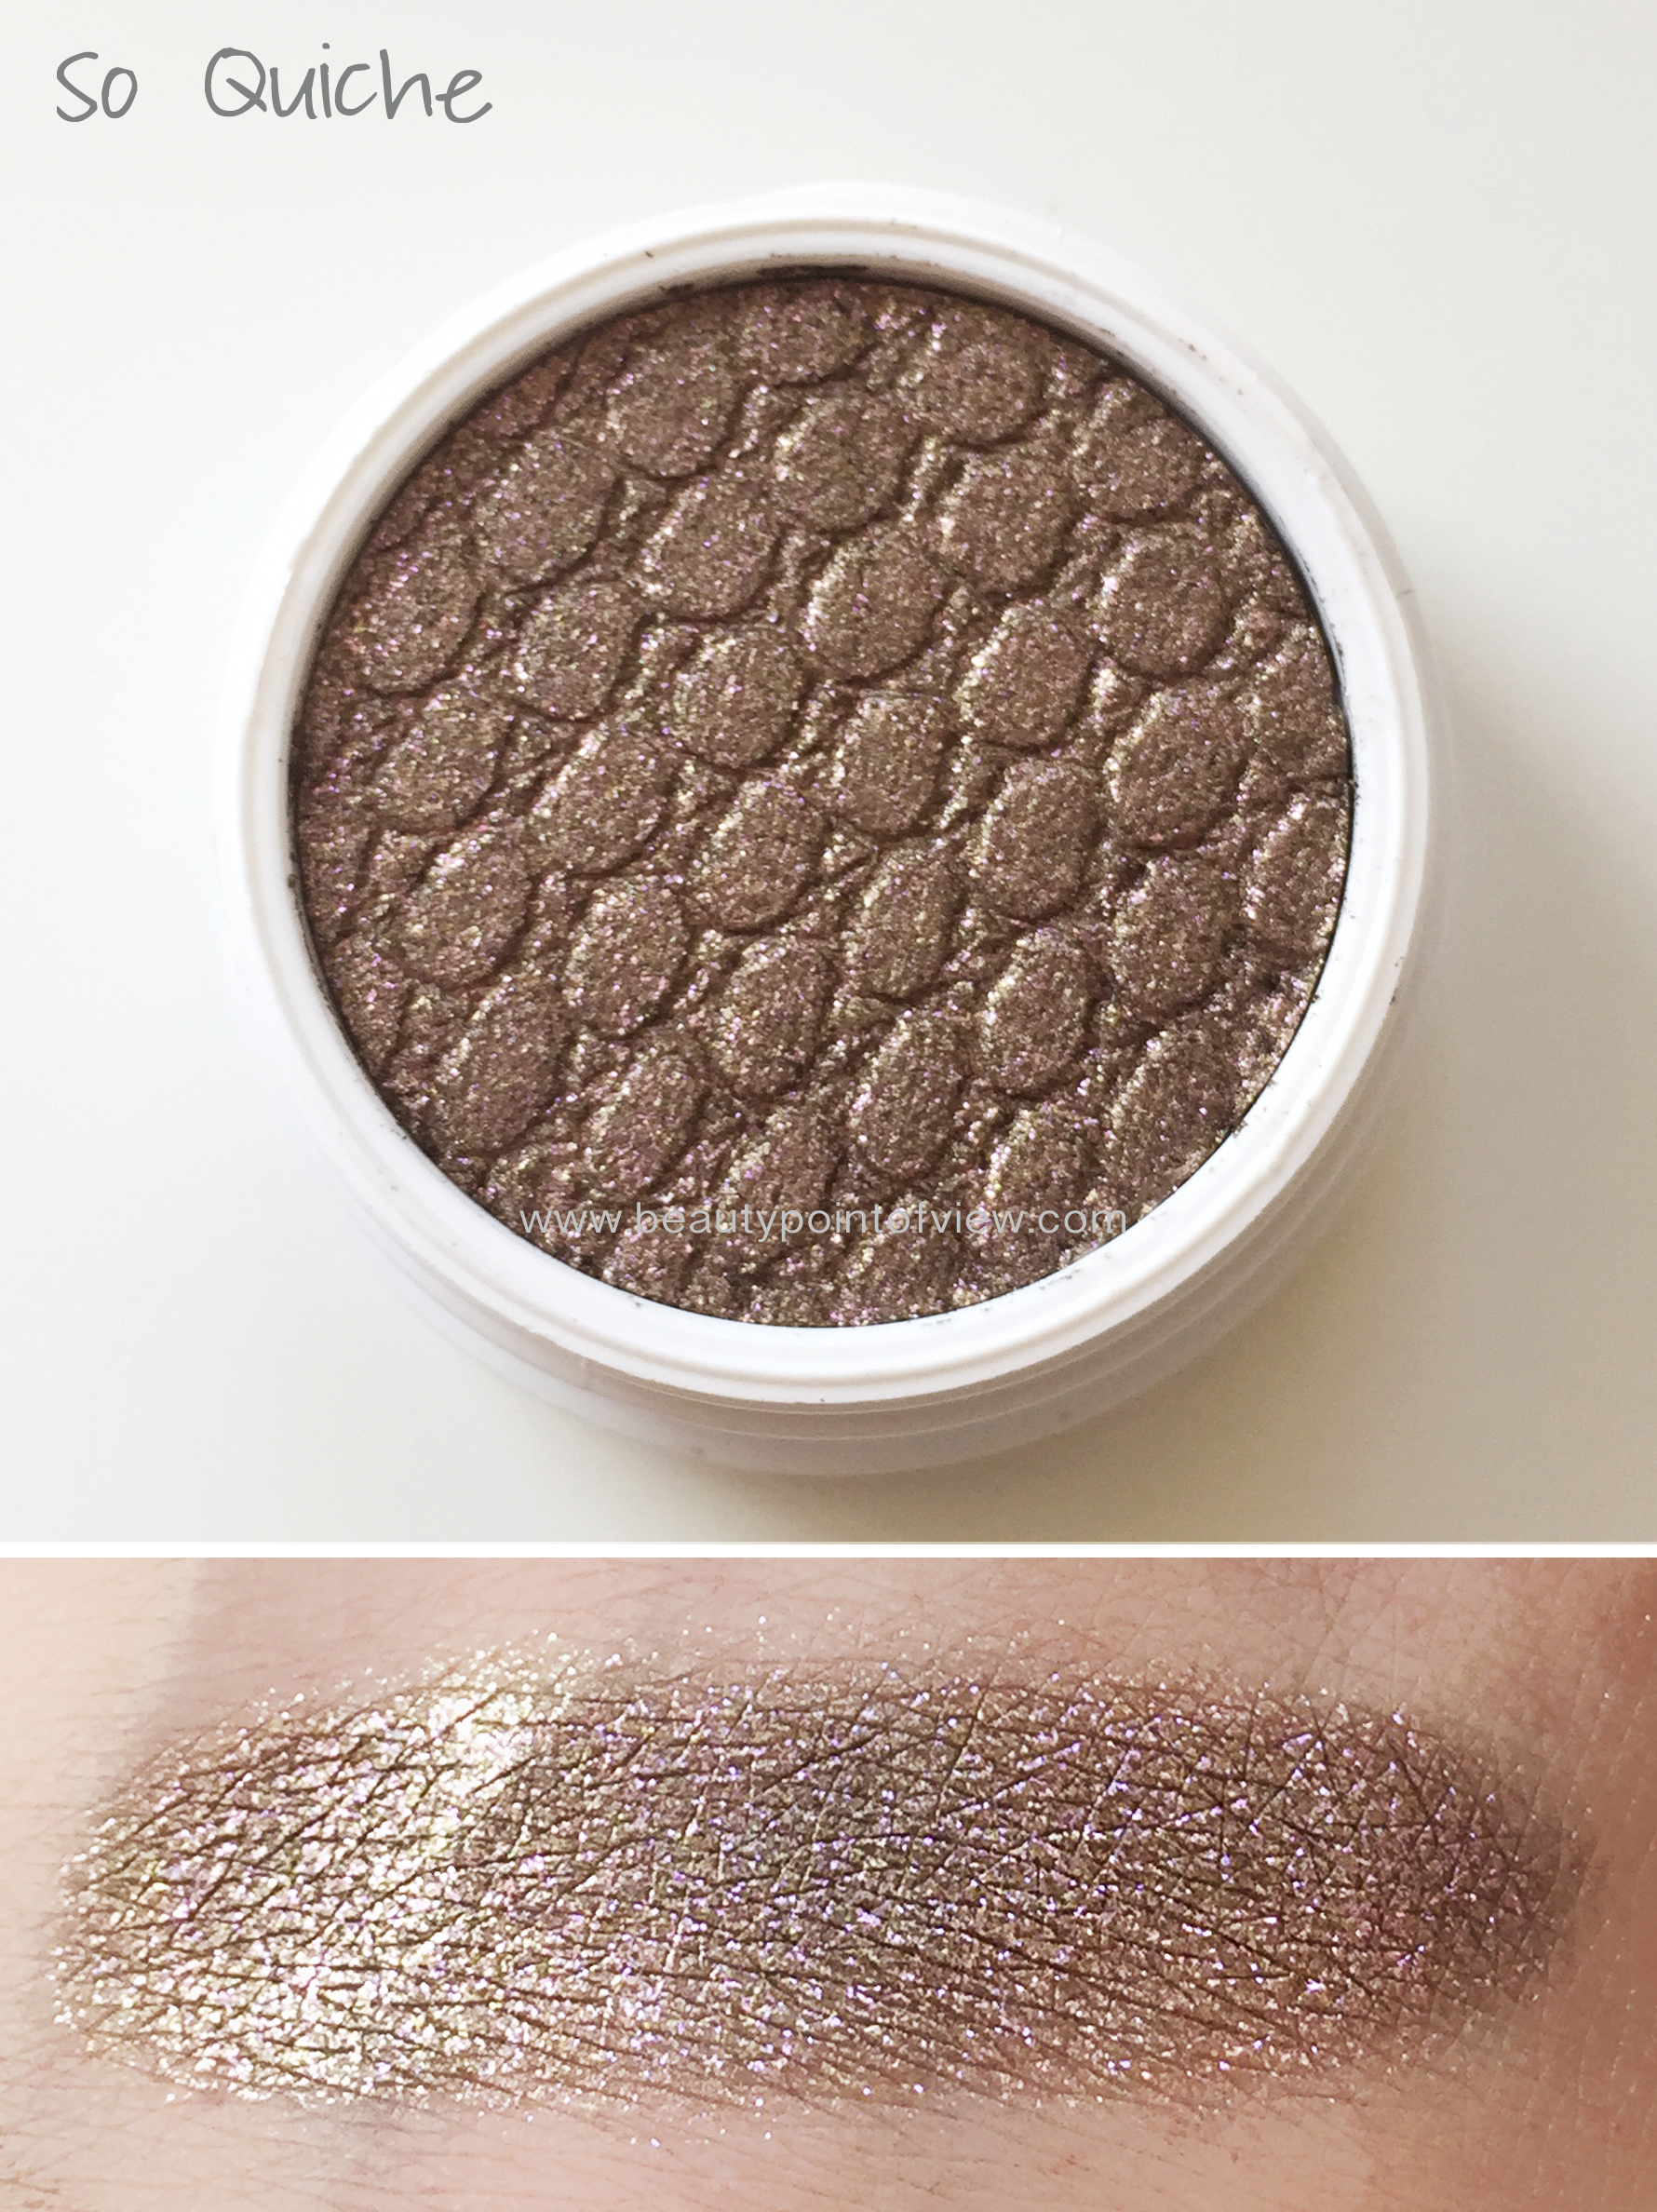 Colourpop Super Shock Eyeshadows - So Quiche